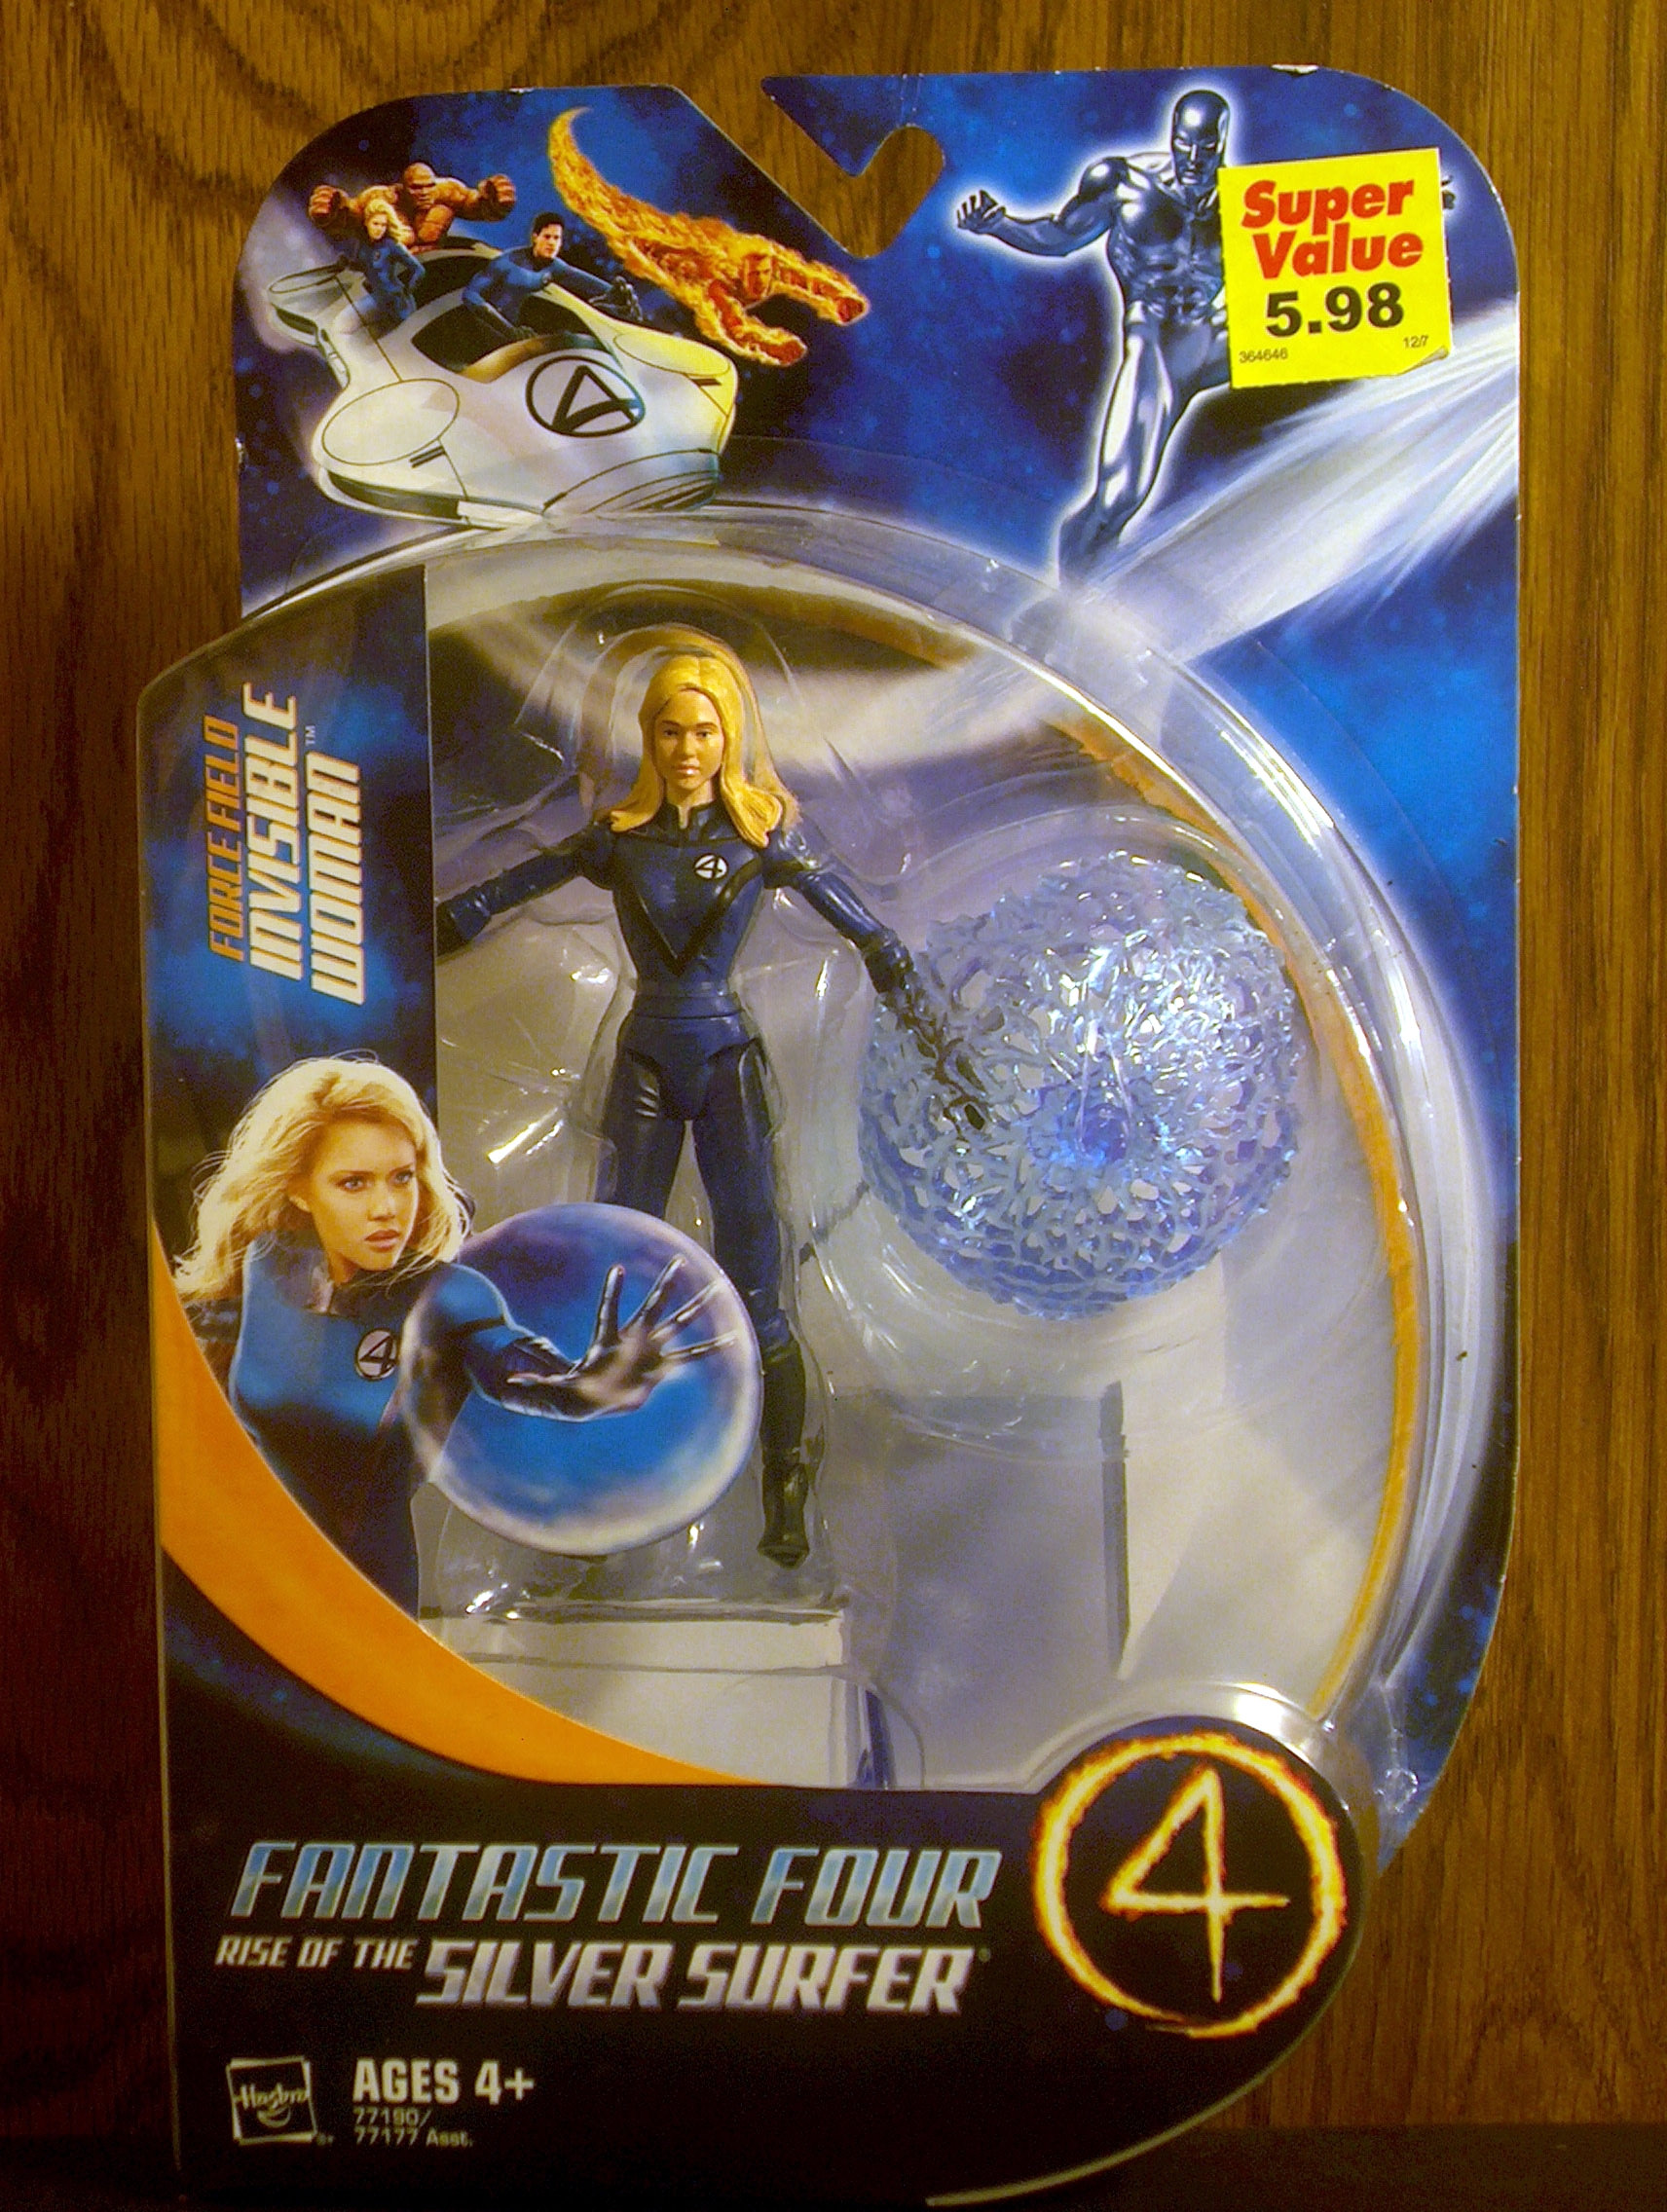 Force Field Invisible Woman